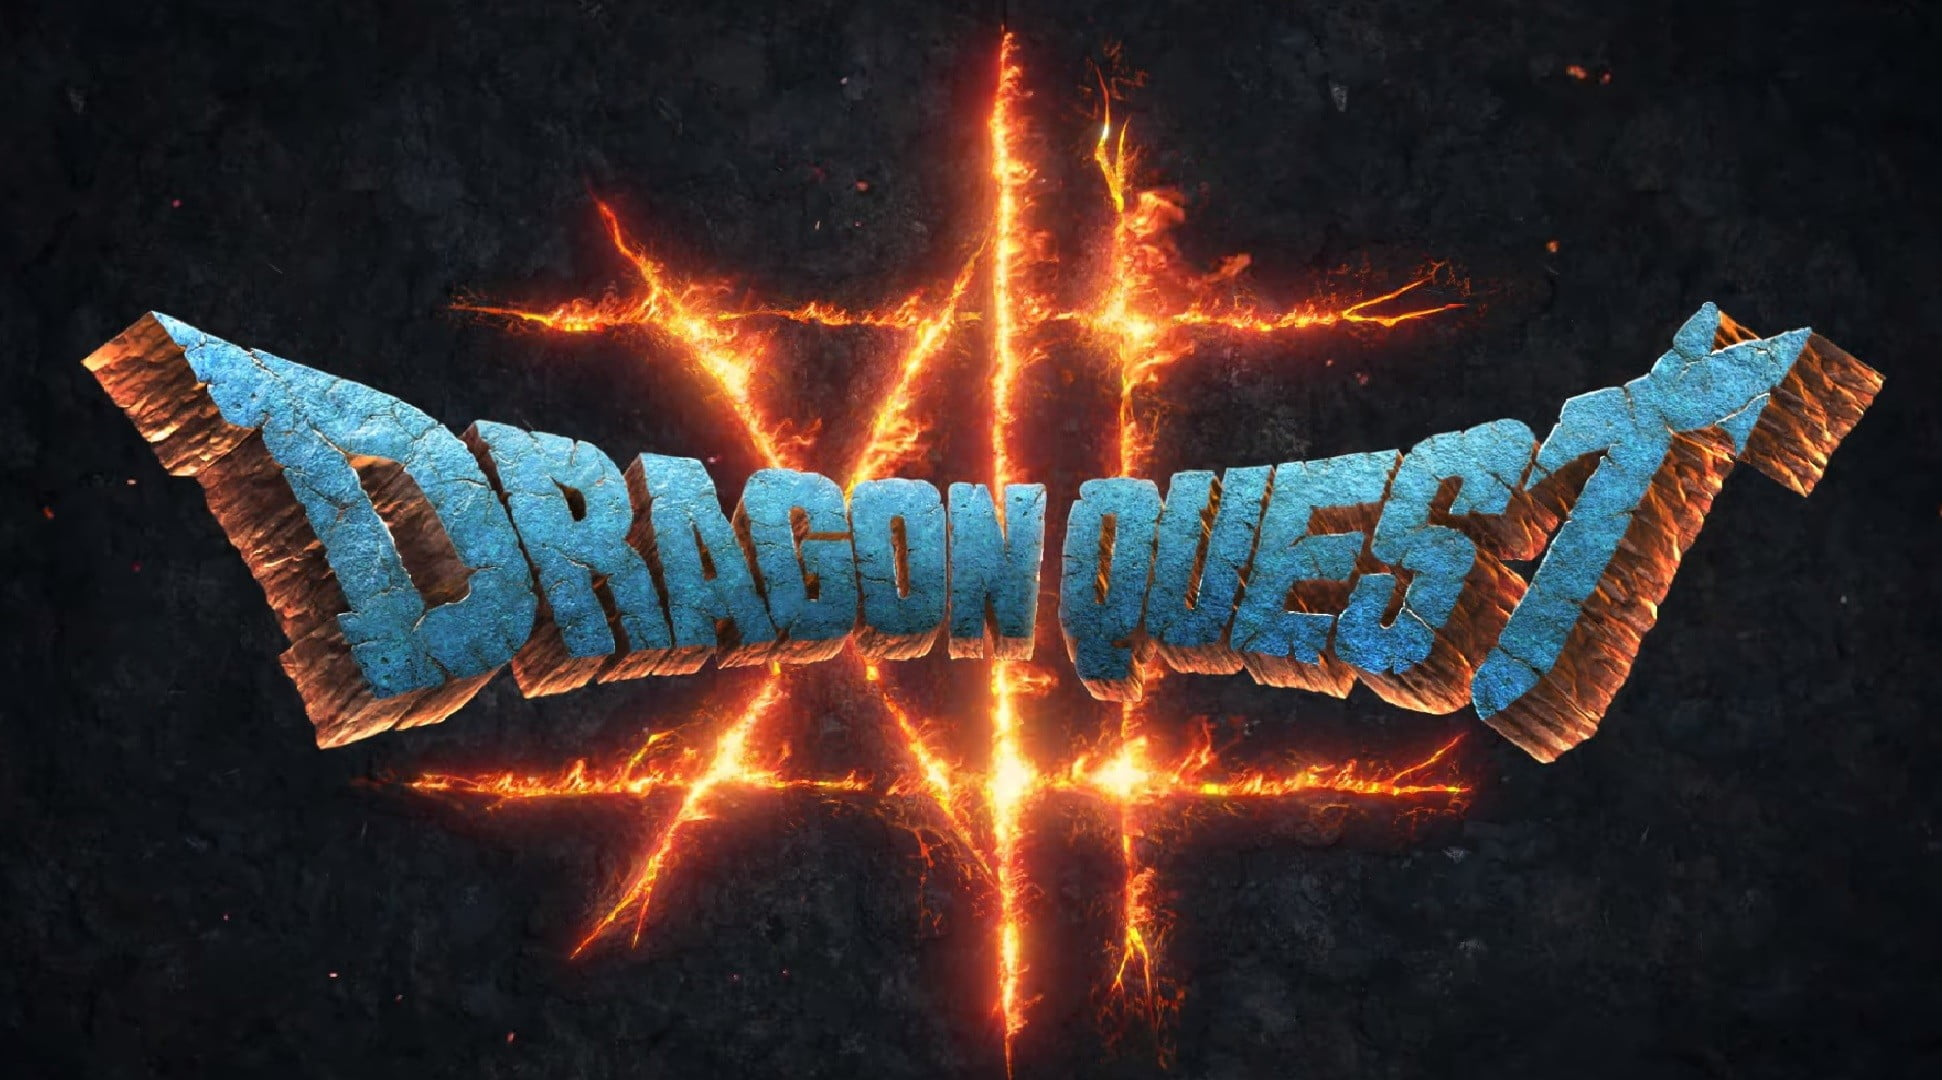 Dragon Quest XII and 5 more games announced at franchise's anniversary stream